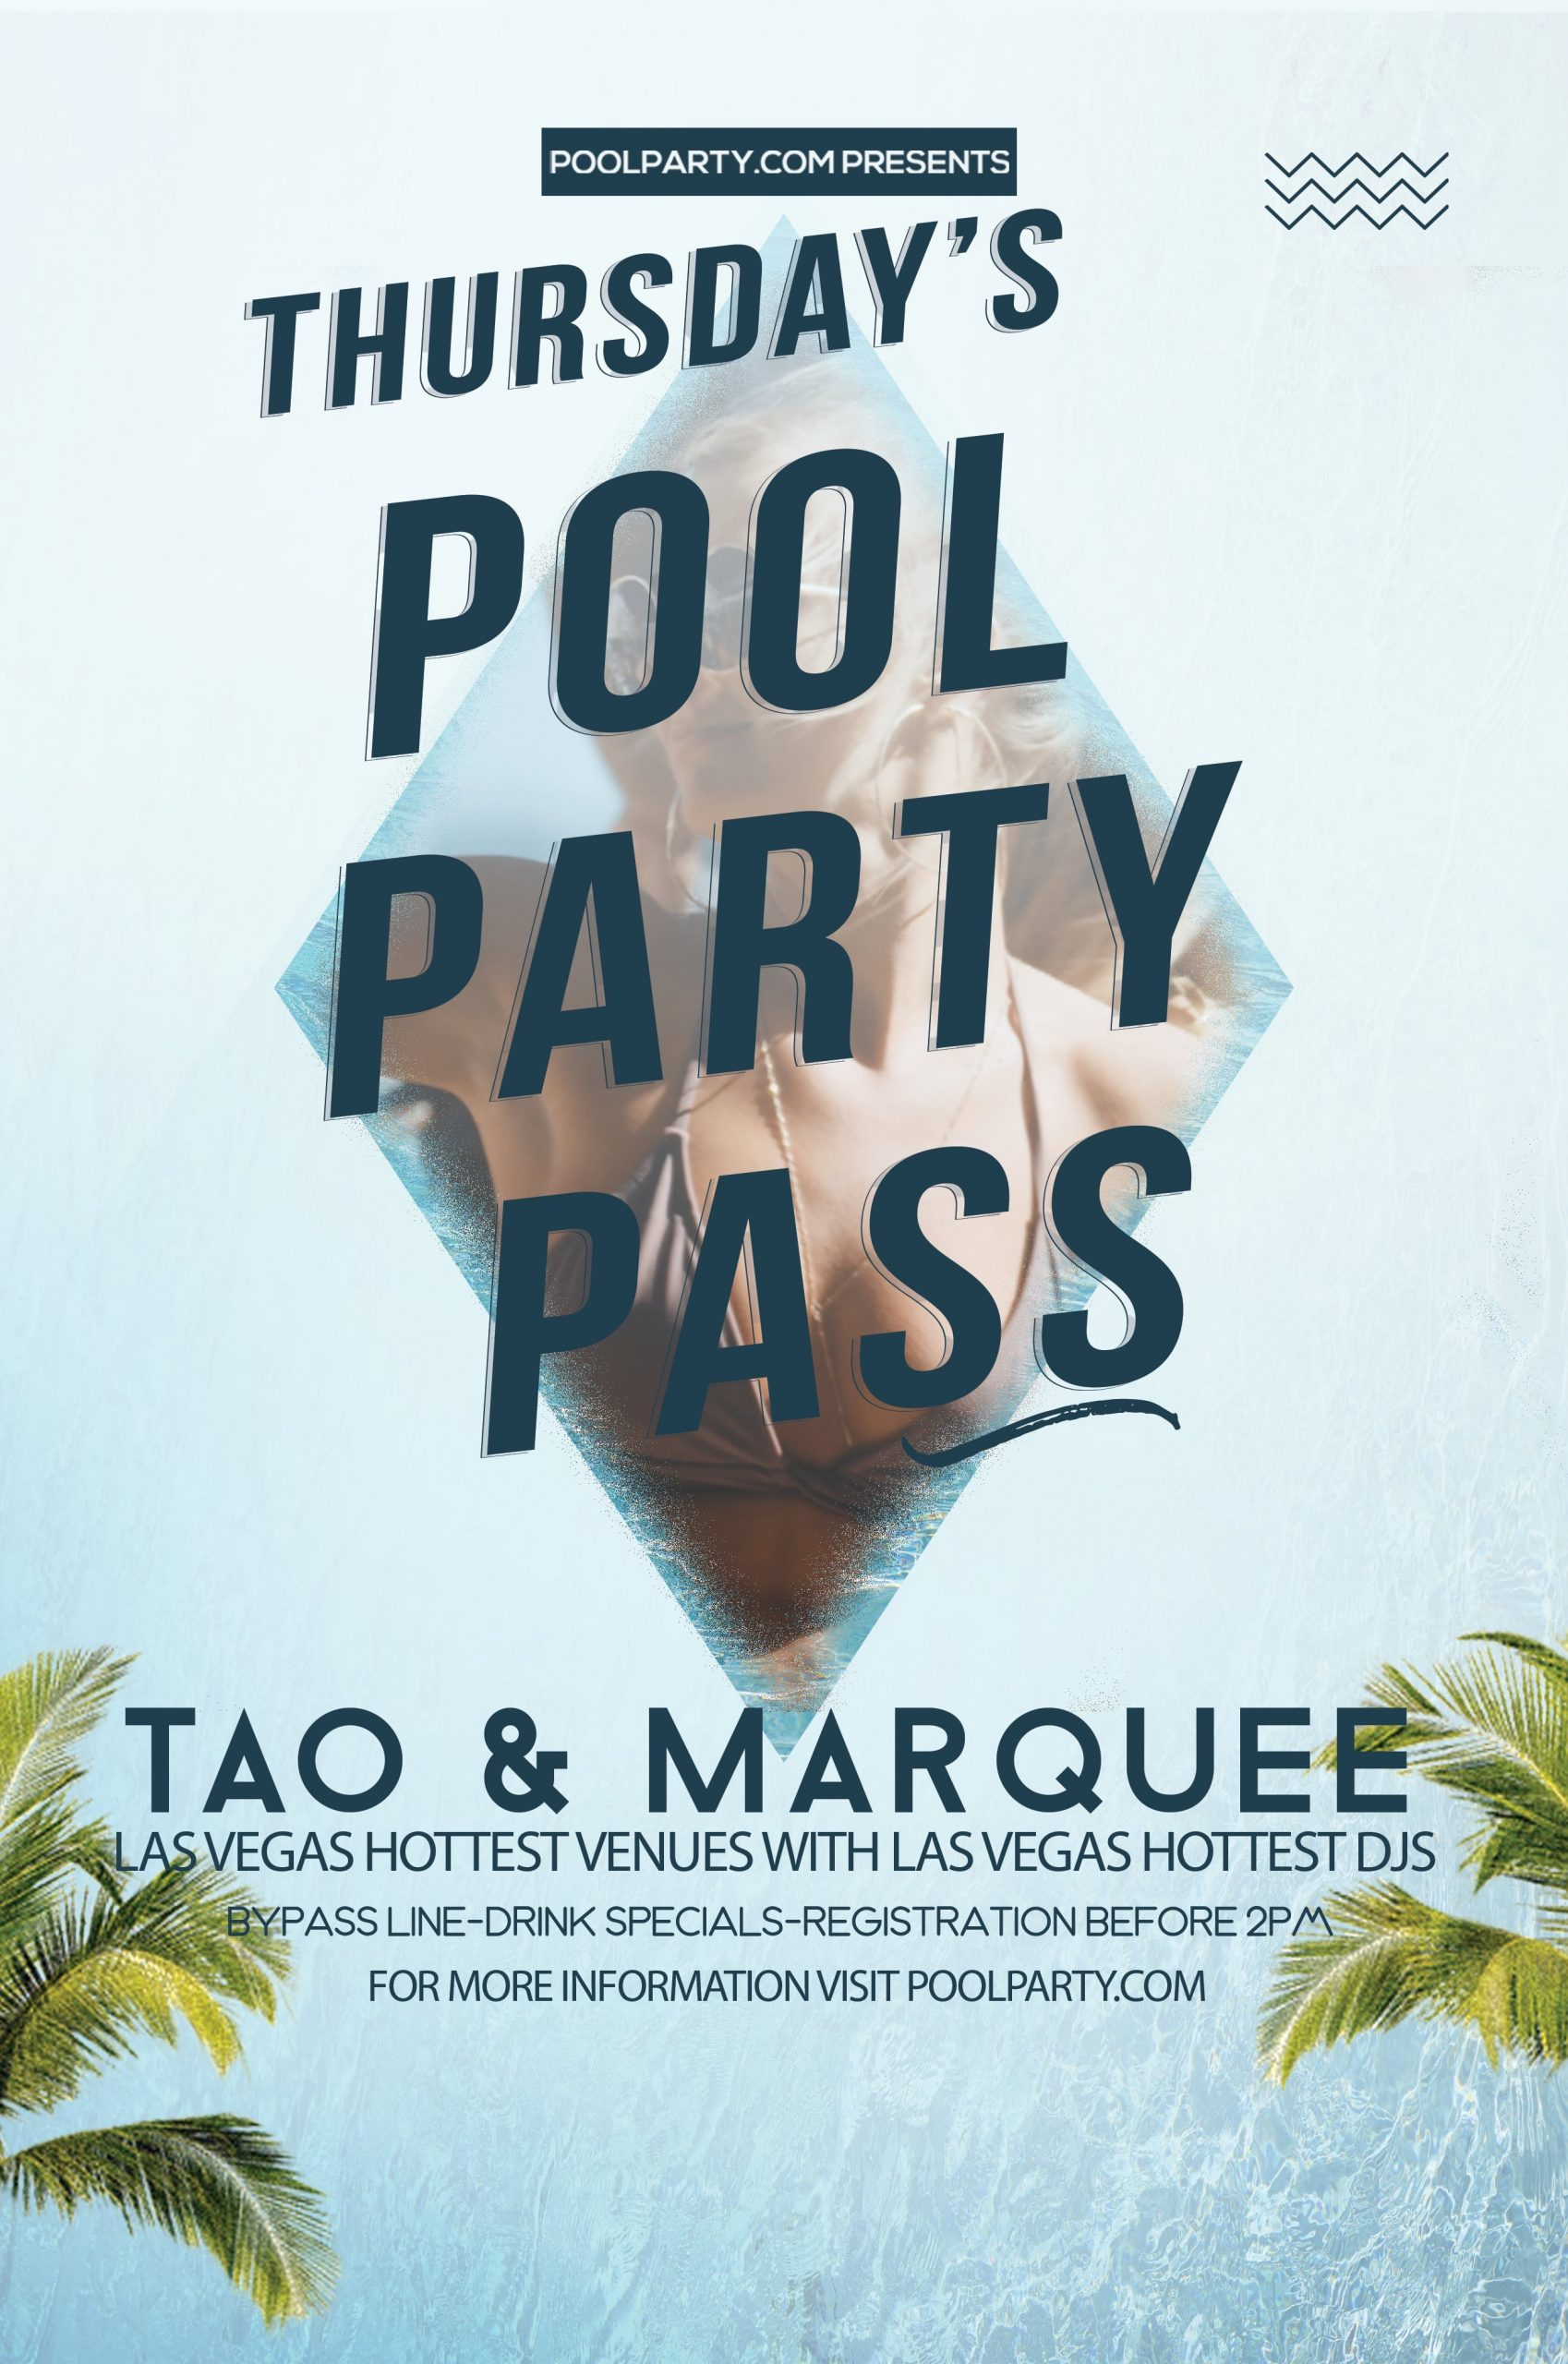 Thursday's Pool Party Pass (August 08th)*NOW INCLUDING FREE ADMISSION TO TAO NIGHTCLUB*